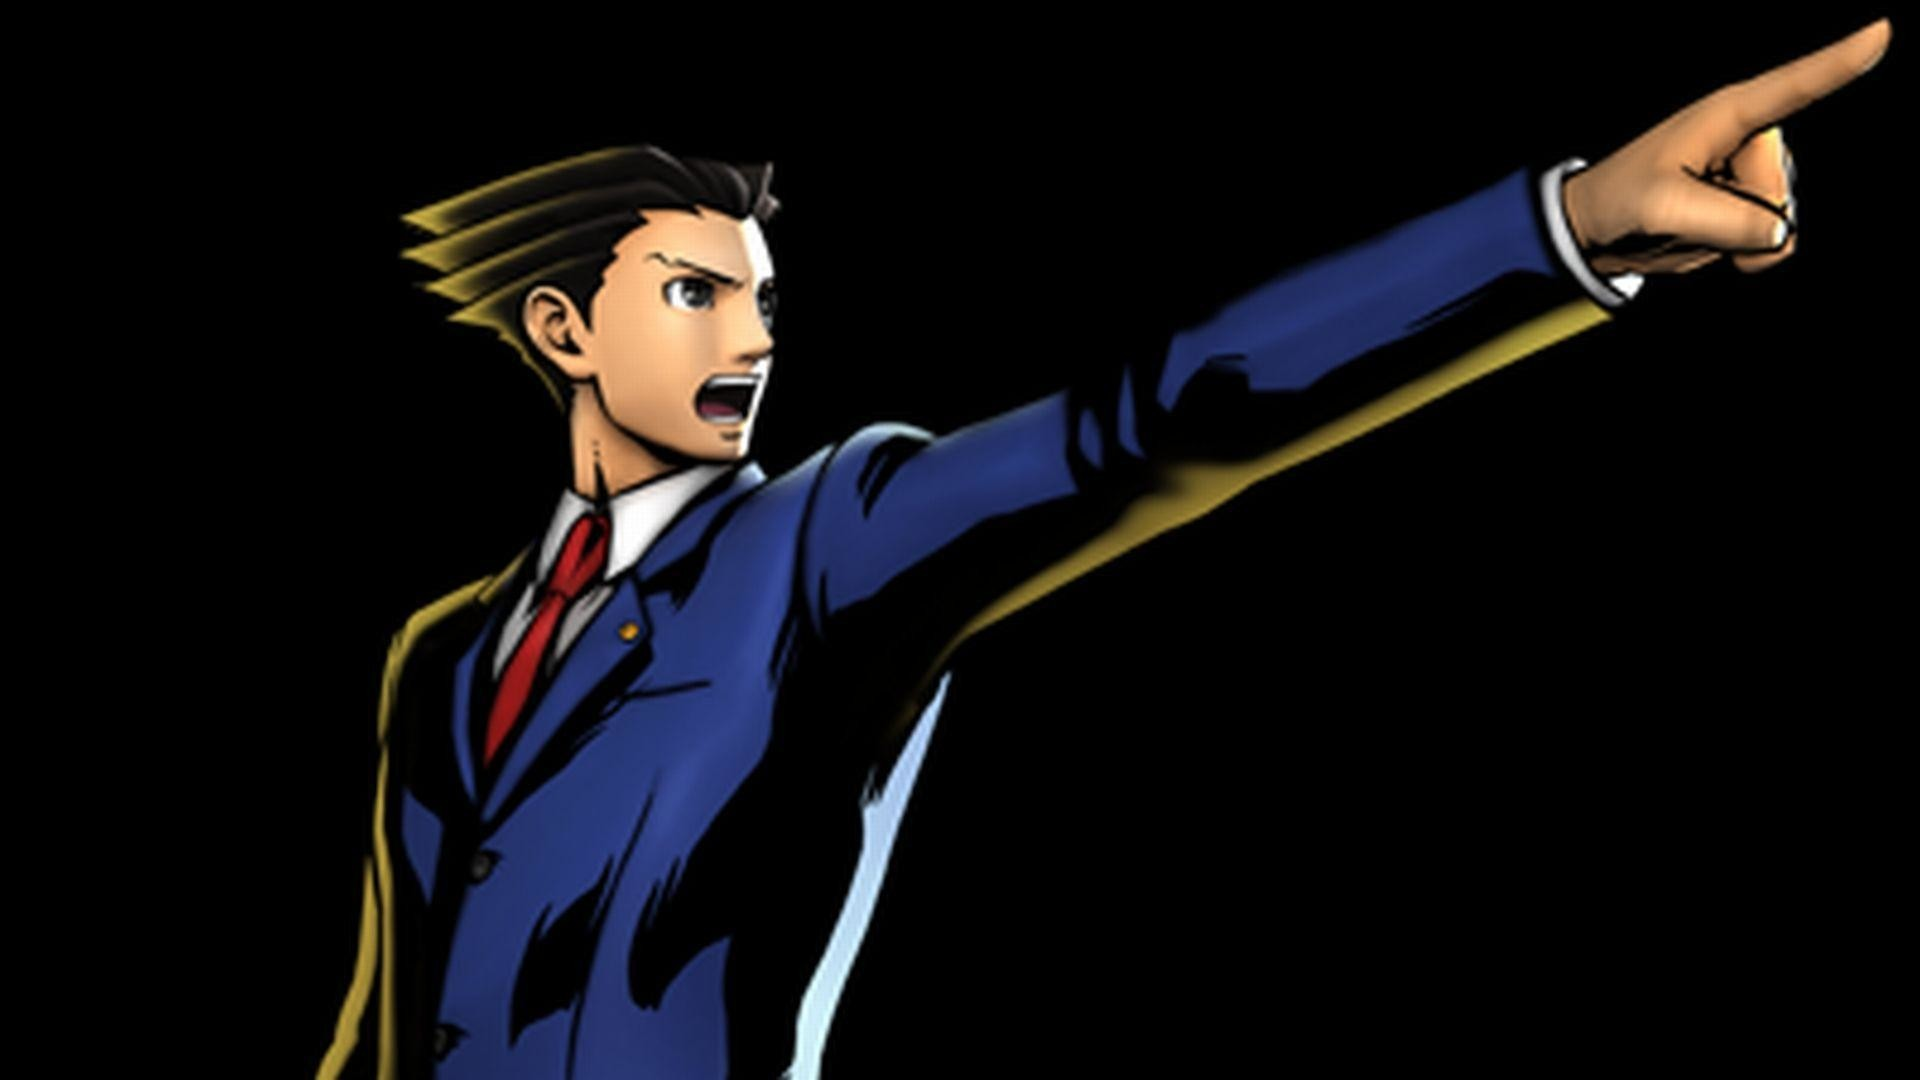 Video Game Phoenix Wright: Ace Attorney Wallpaper px .